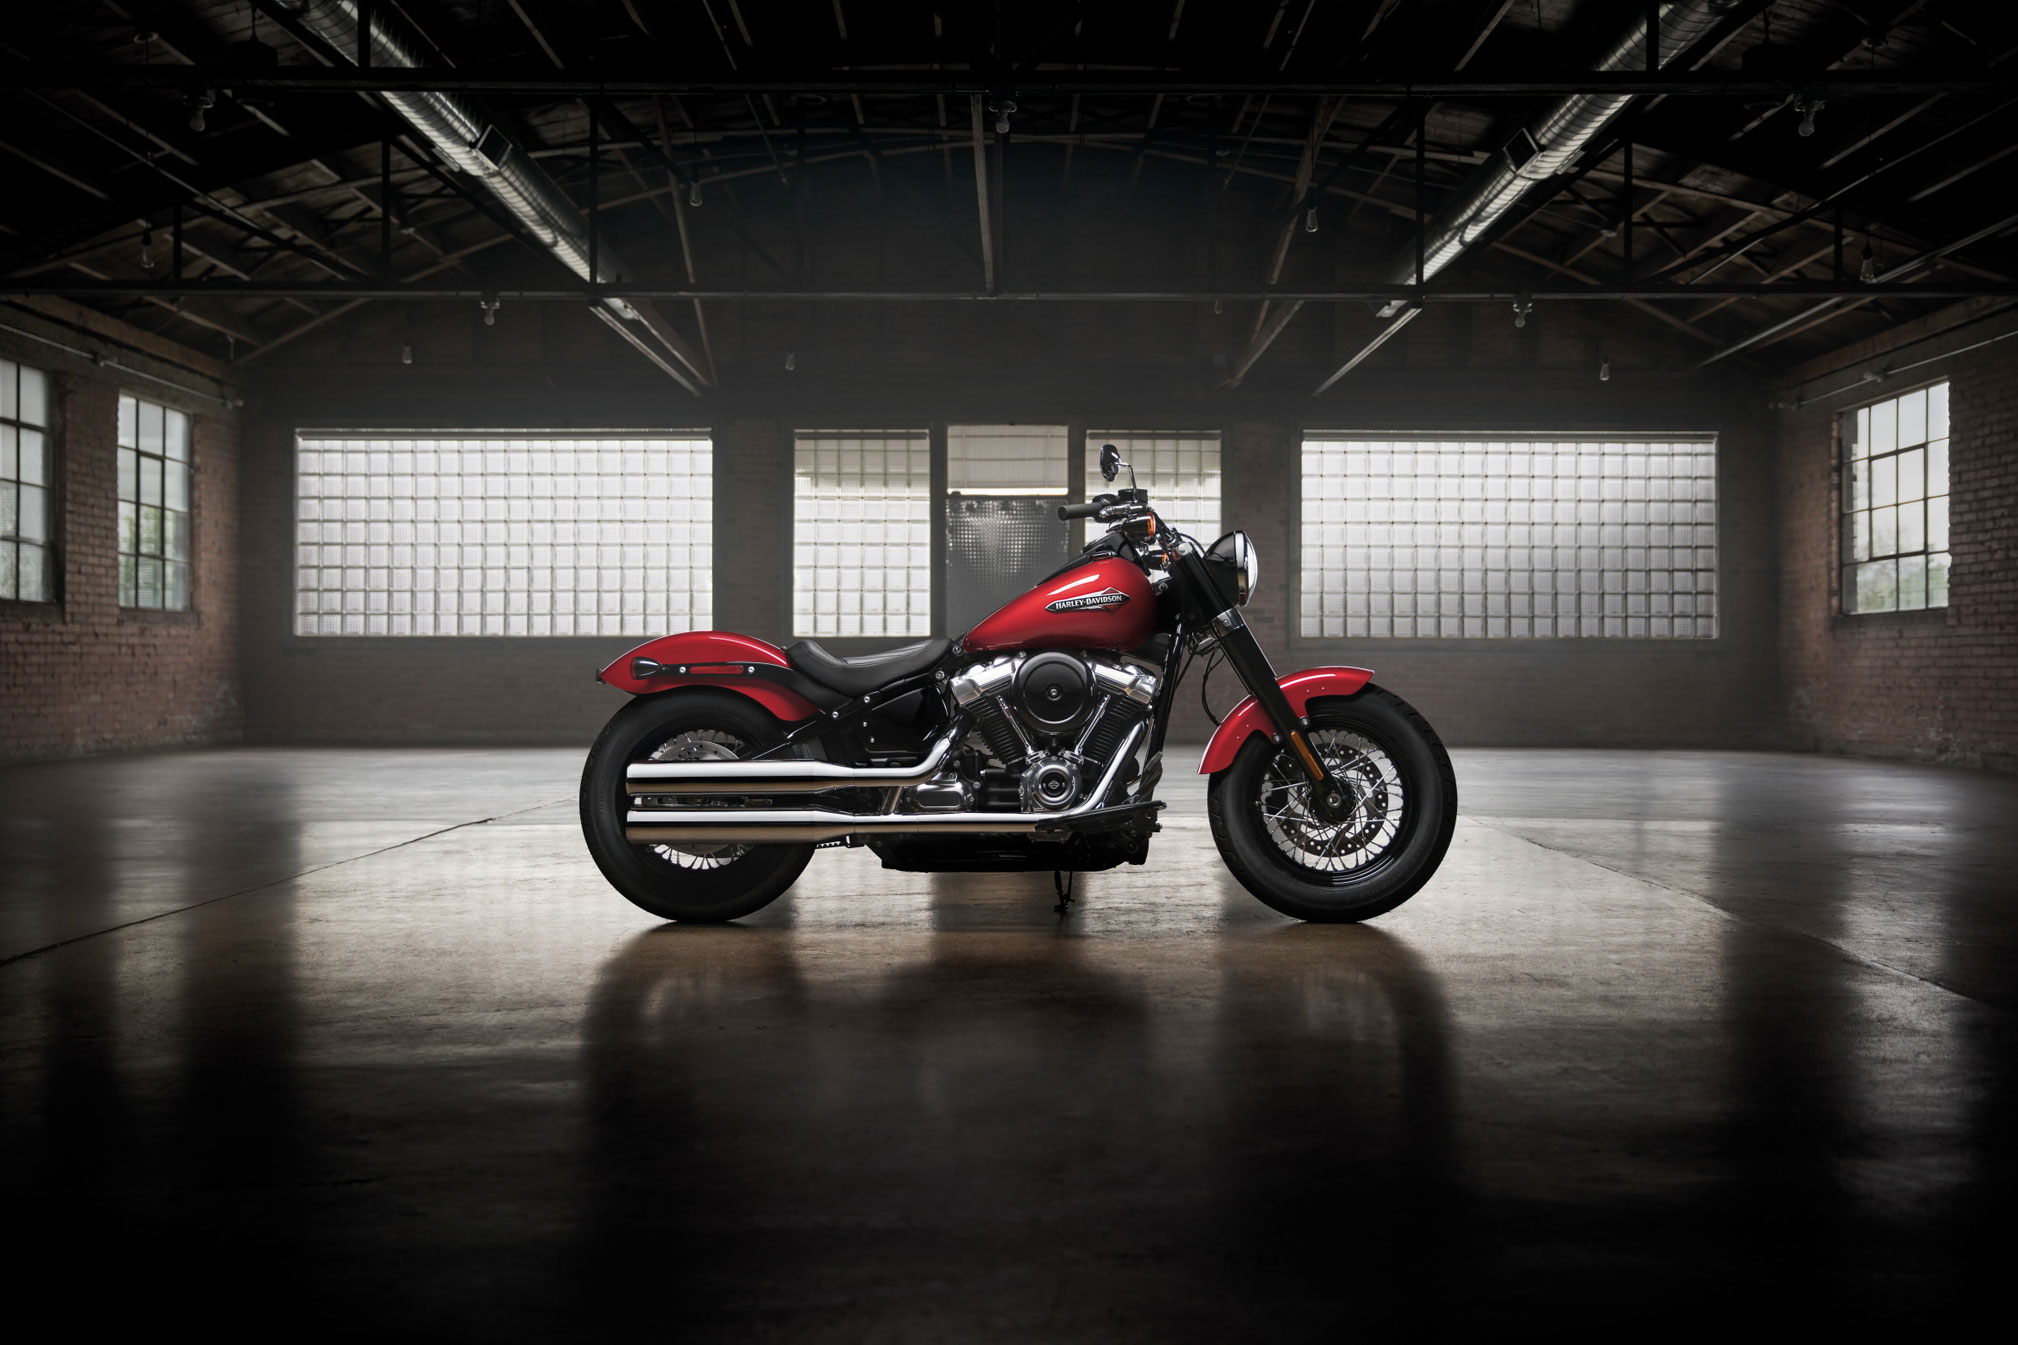 2018 Harley Davidson Softail Slim Review • Total Motorcycle